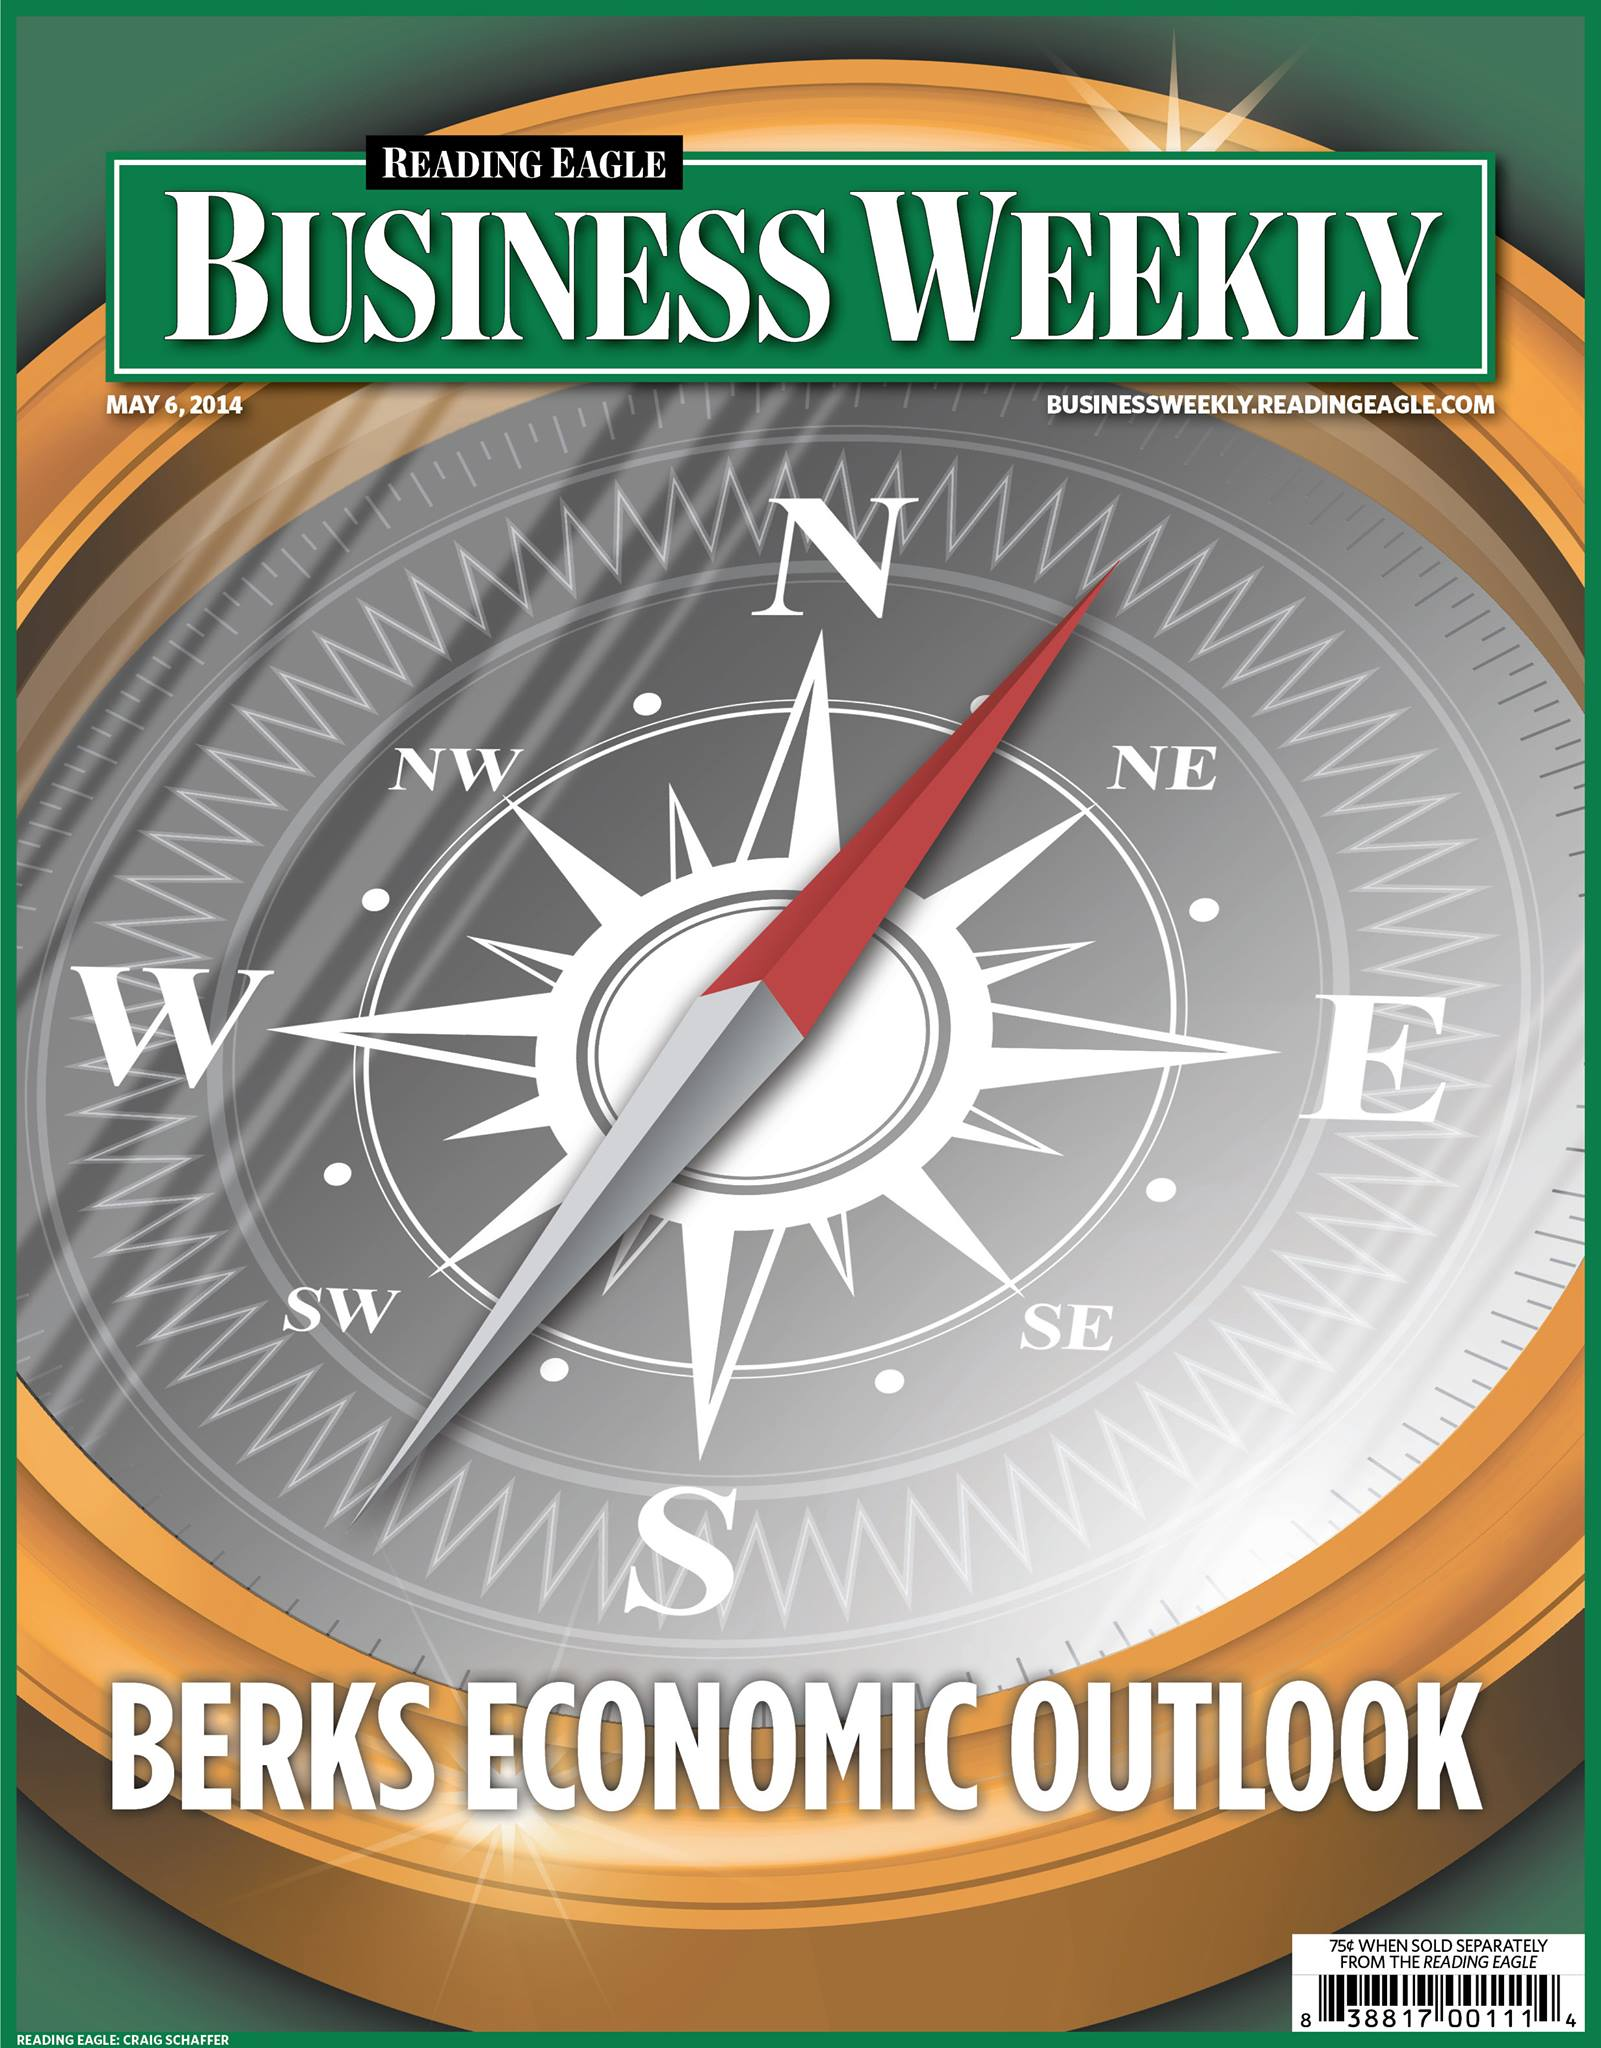 Berks Economic Outlook